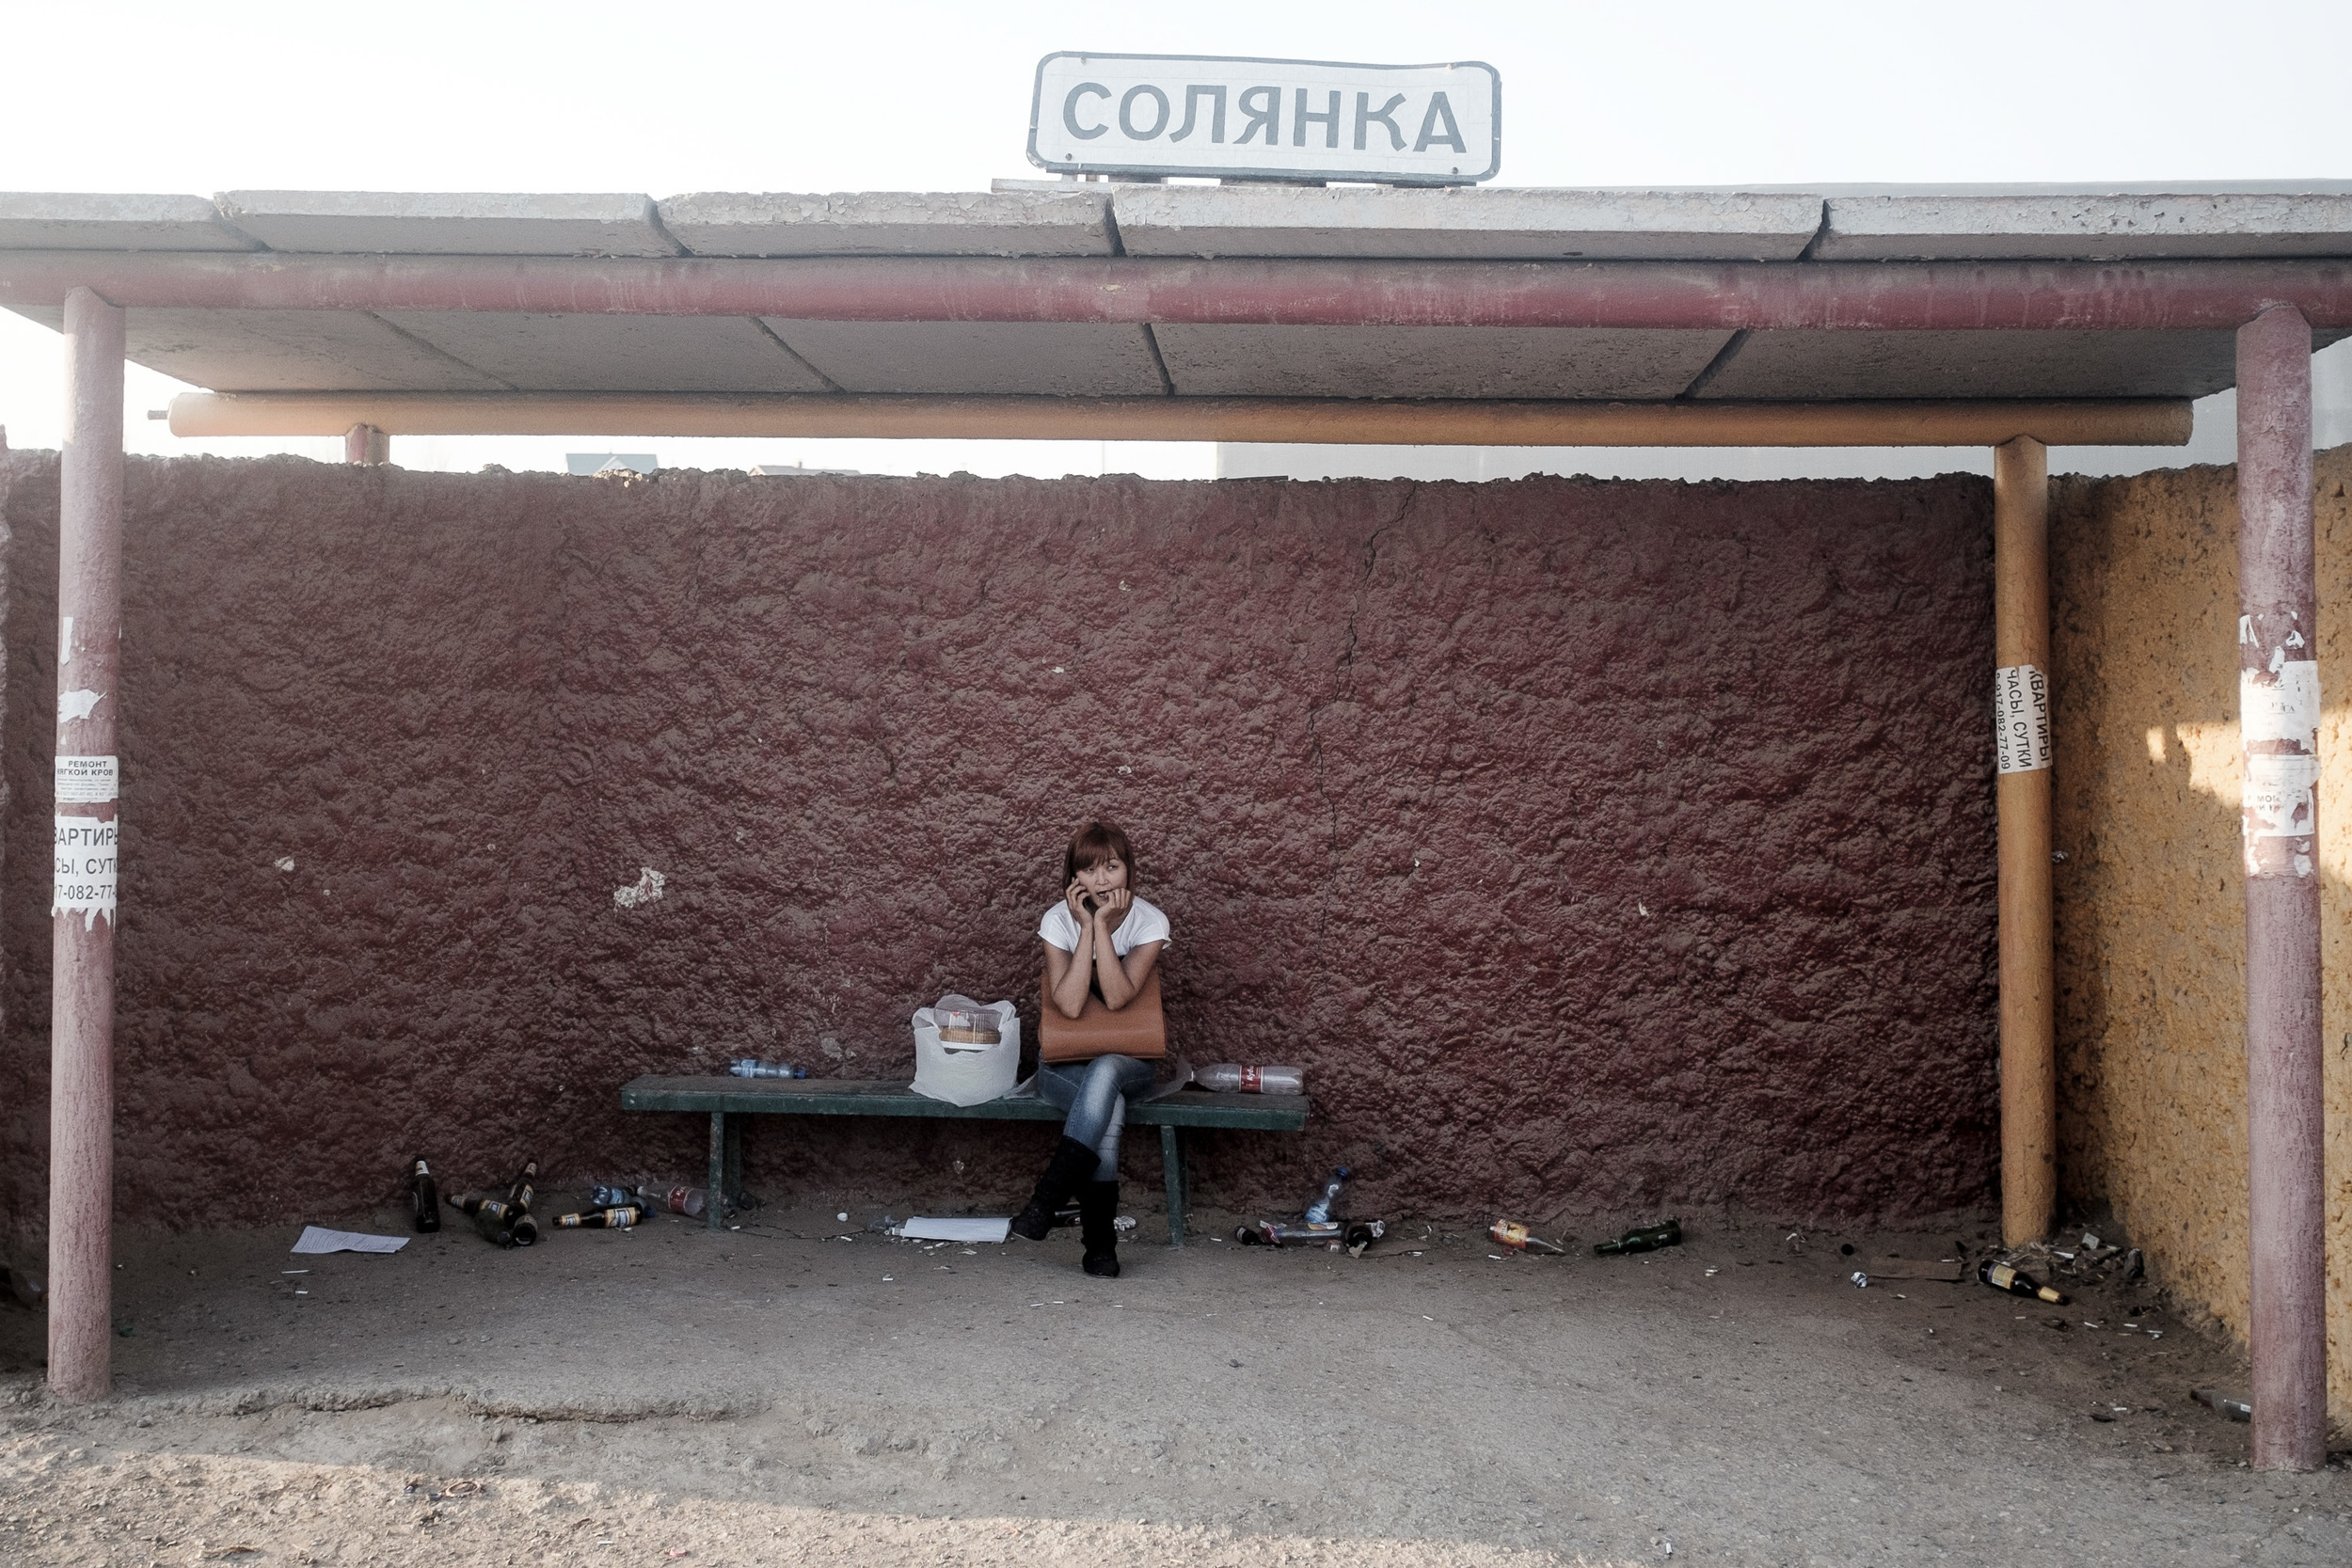 Bus stop, Astrakhan outskirts